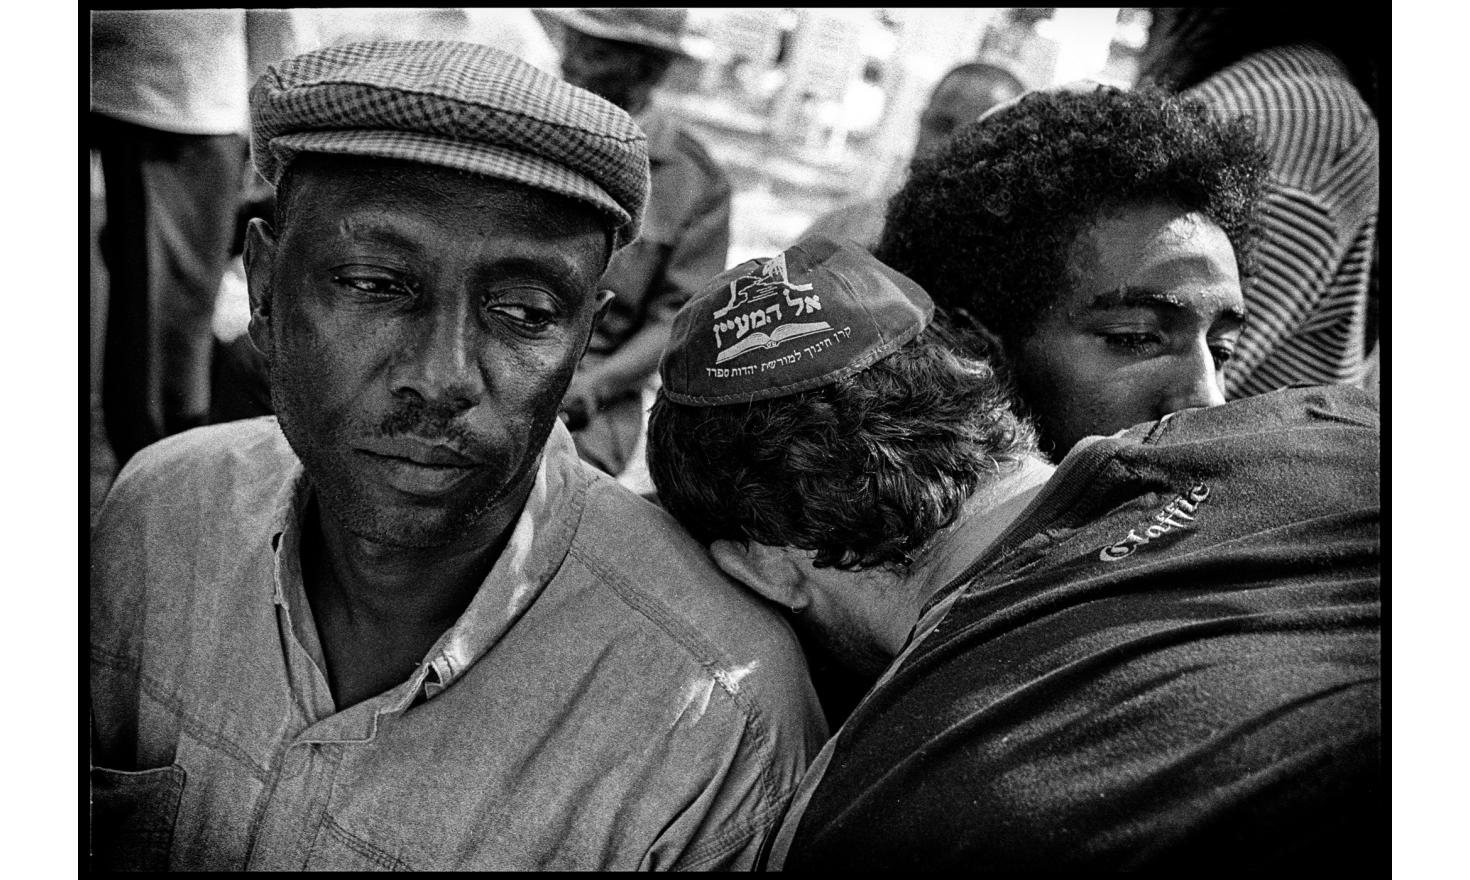 Funerals of two children of ethiopian origin killed by a quassam rocket sent from Gaza. Sderot, Israel. November 2004.